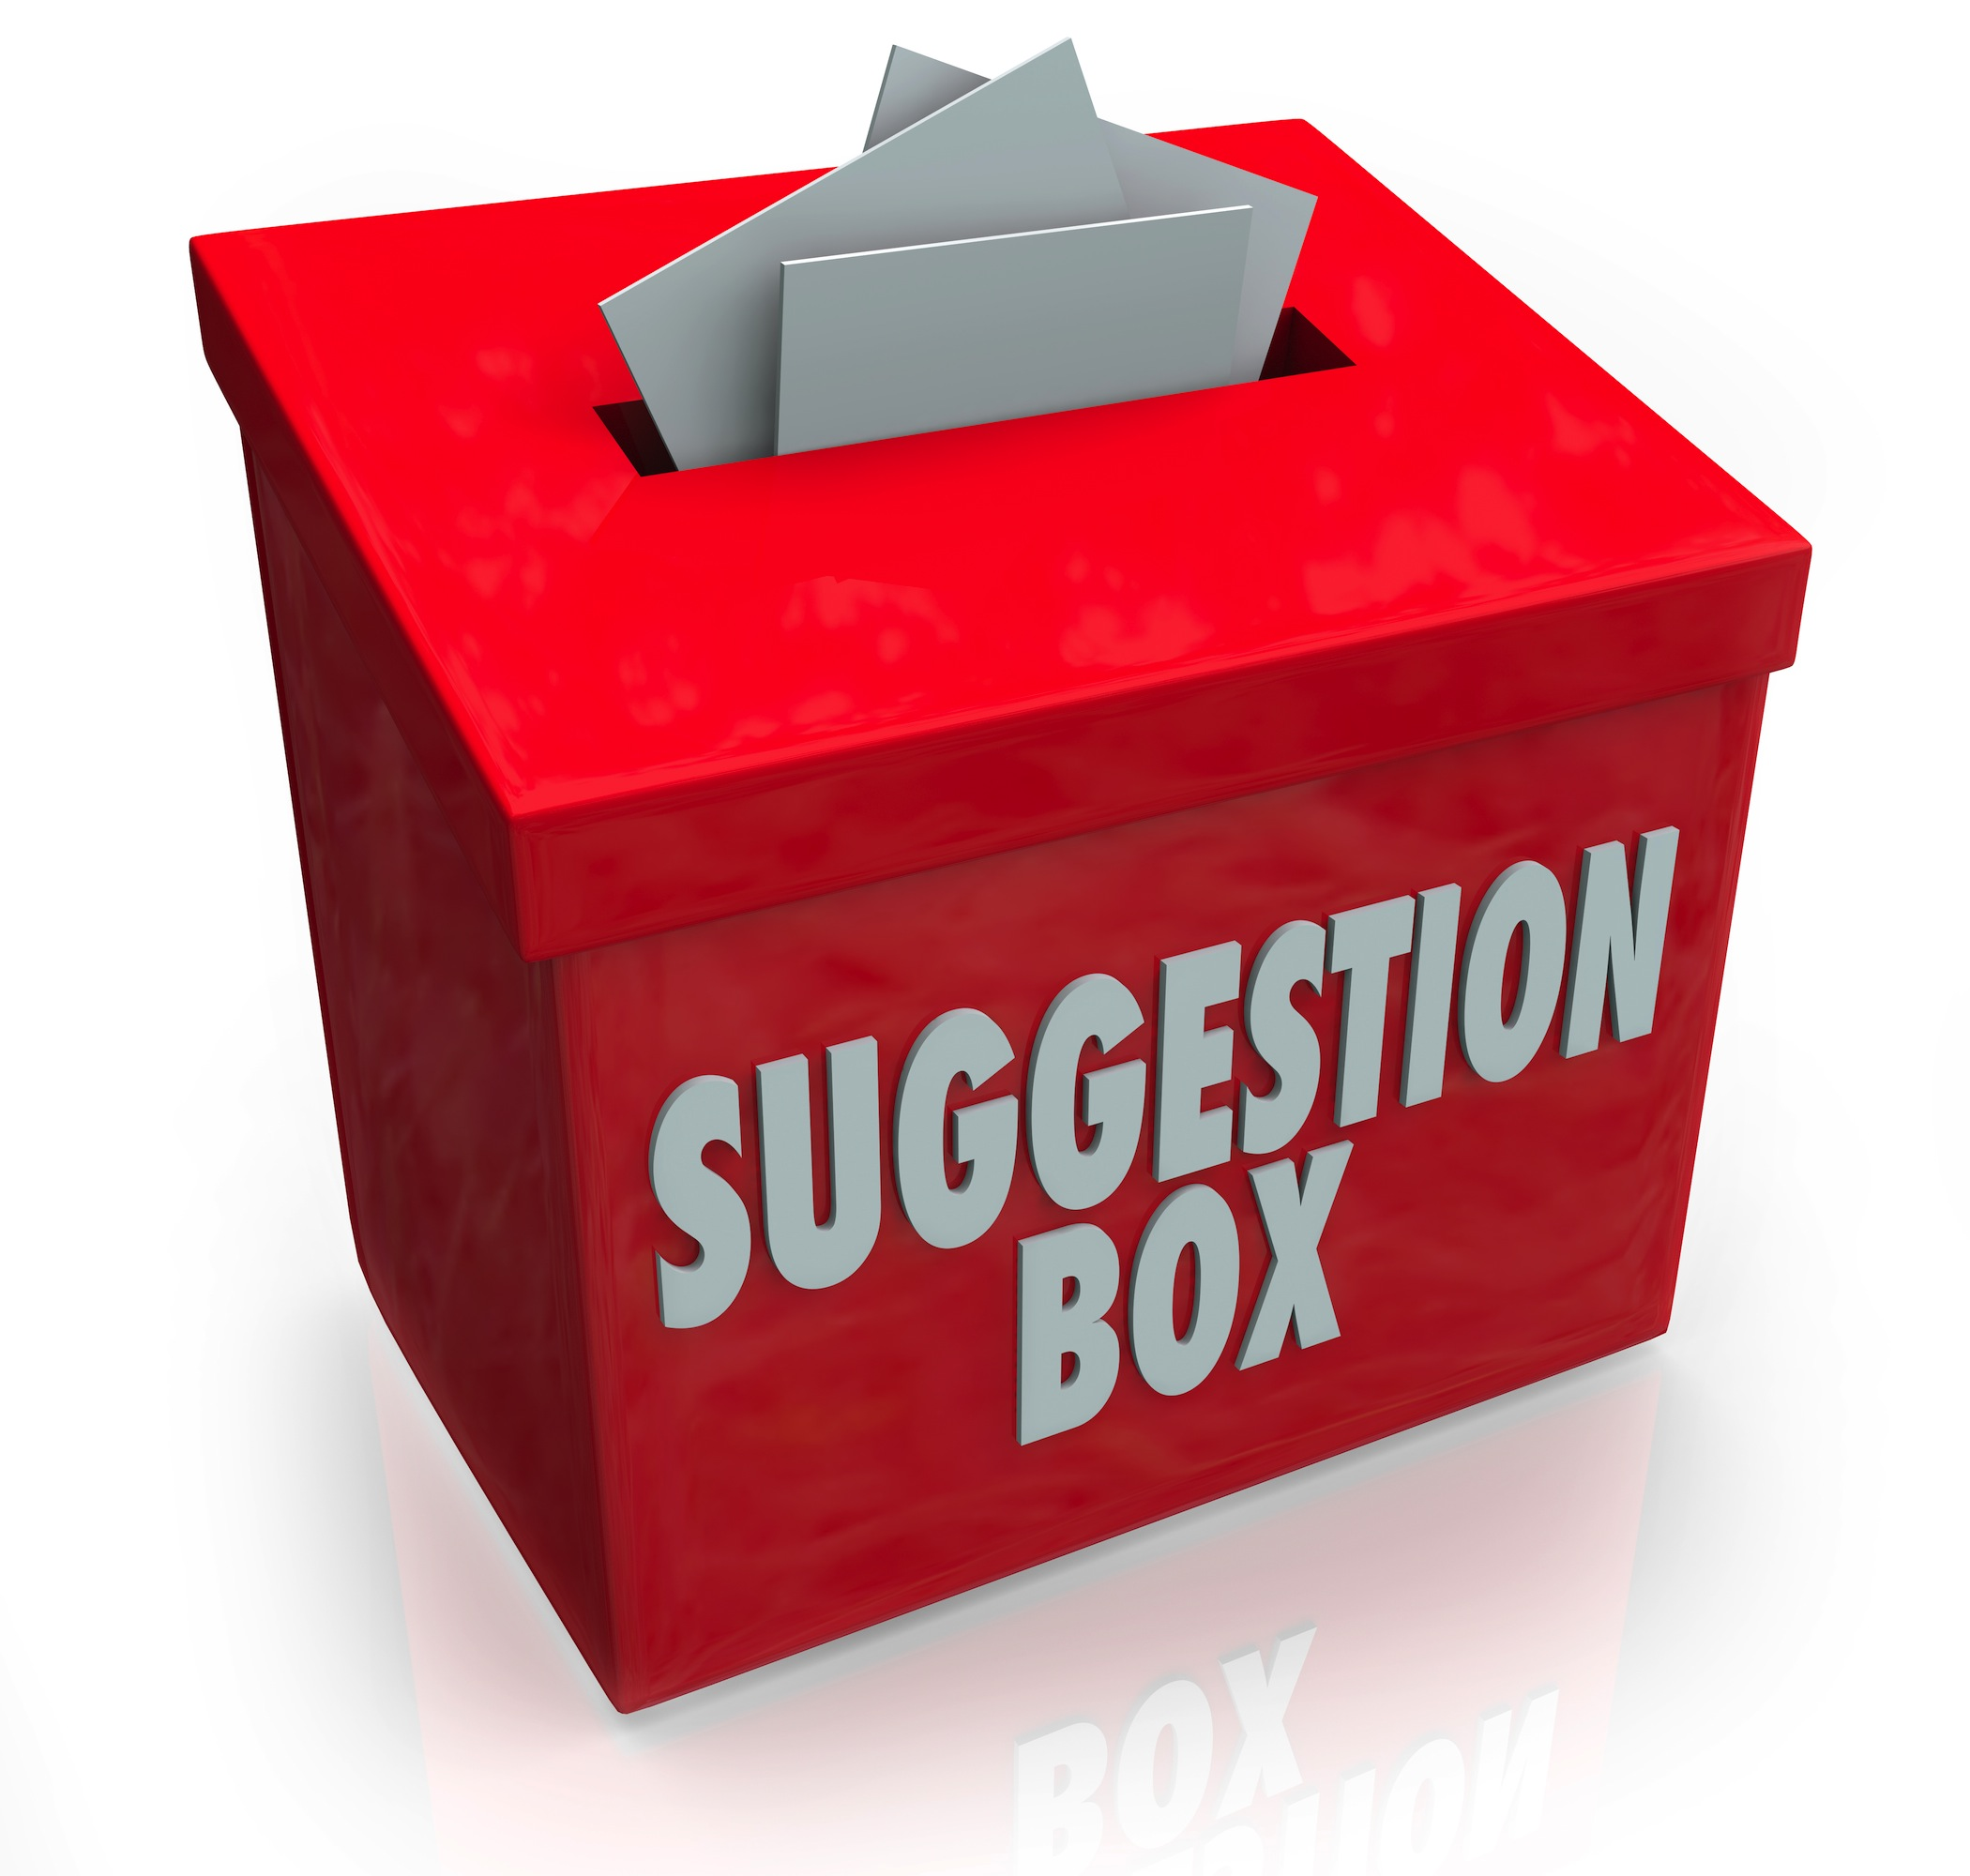 Comments: From The Suggestion Box